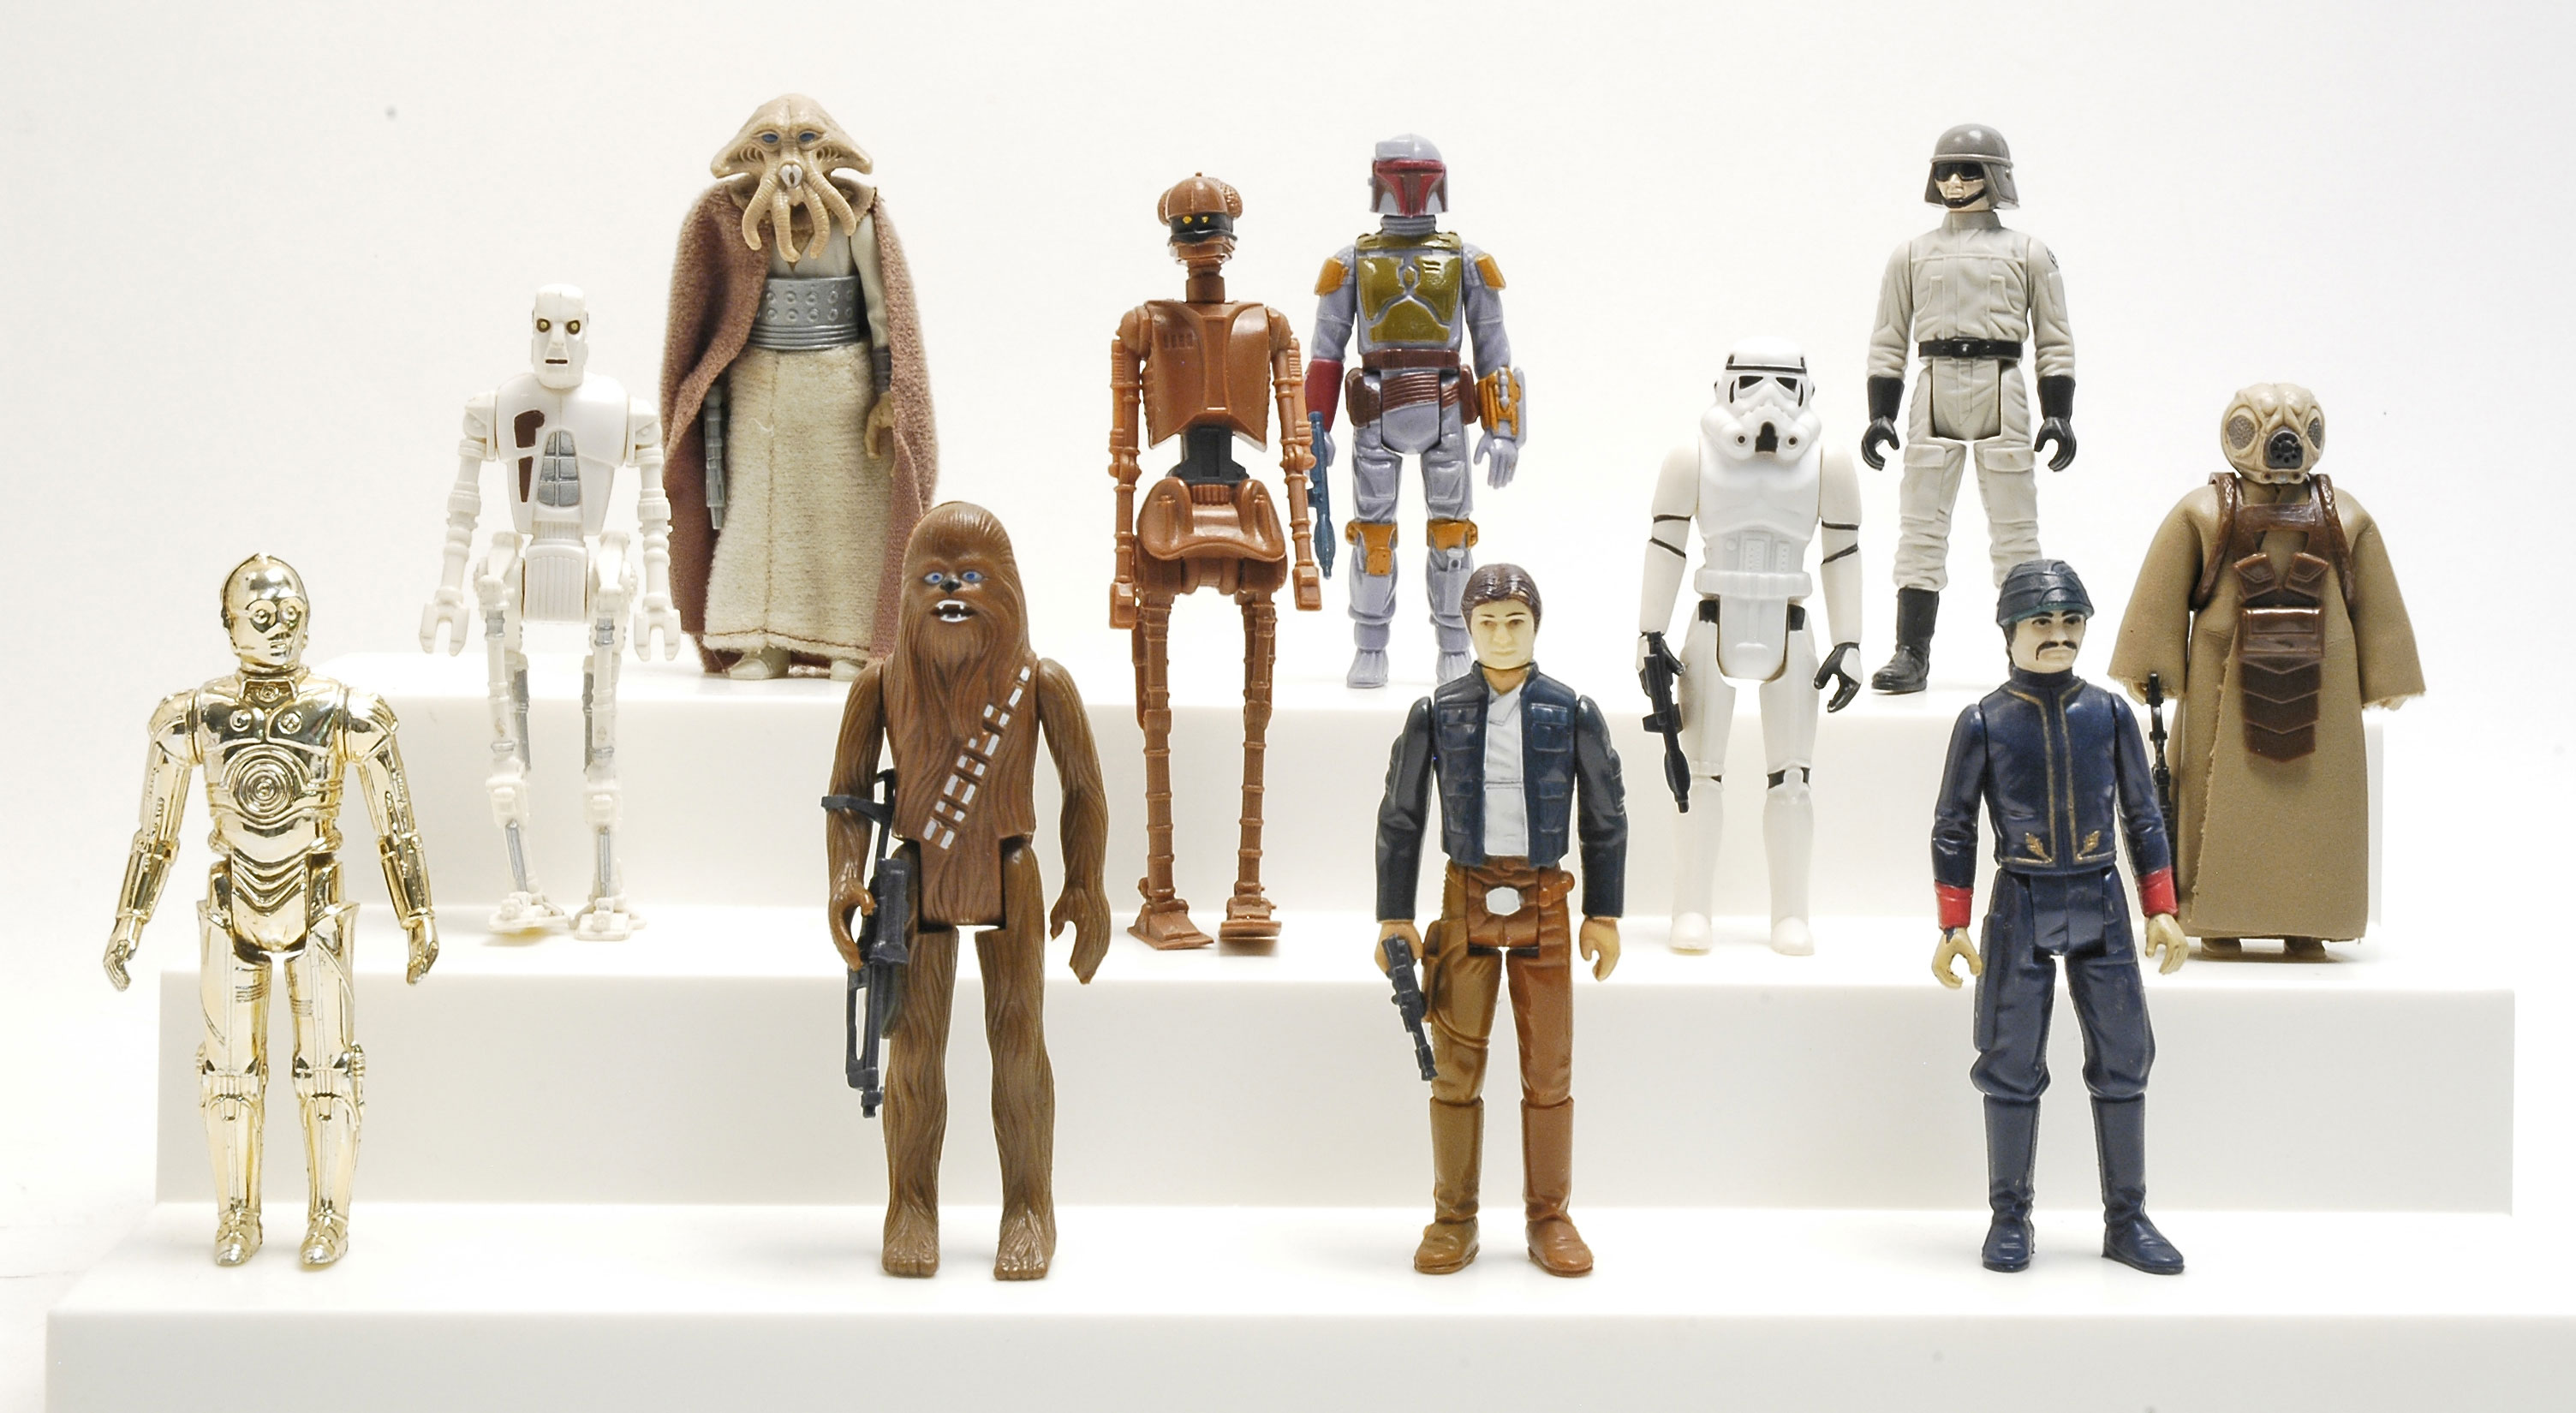 Original Star Wars Toys : How to instantly own the world s coolest star wars action